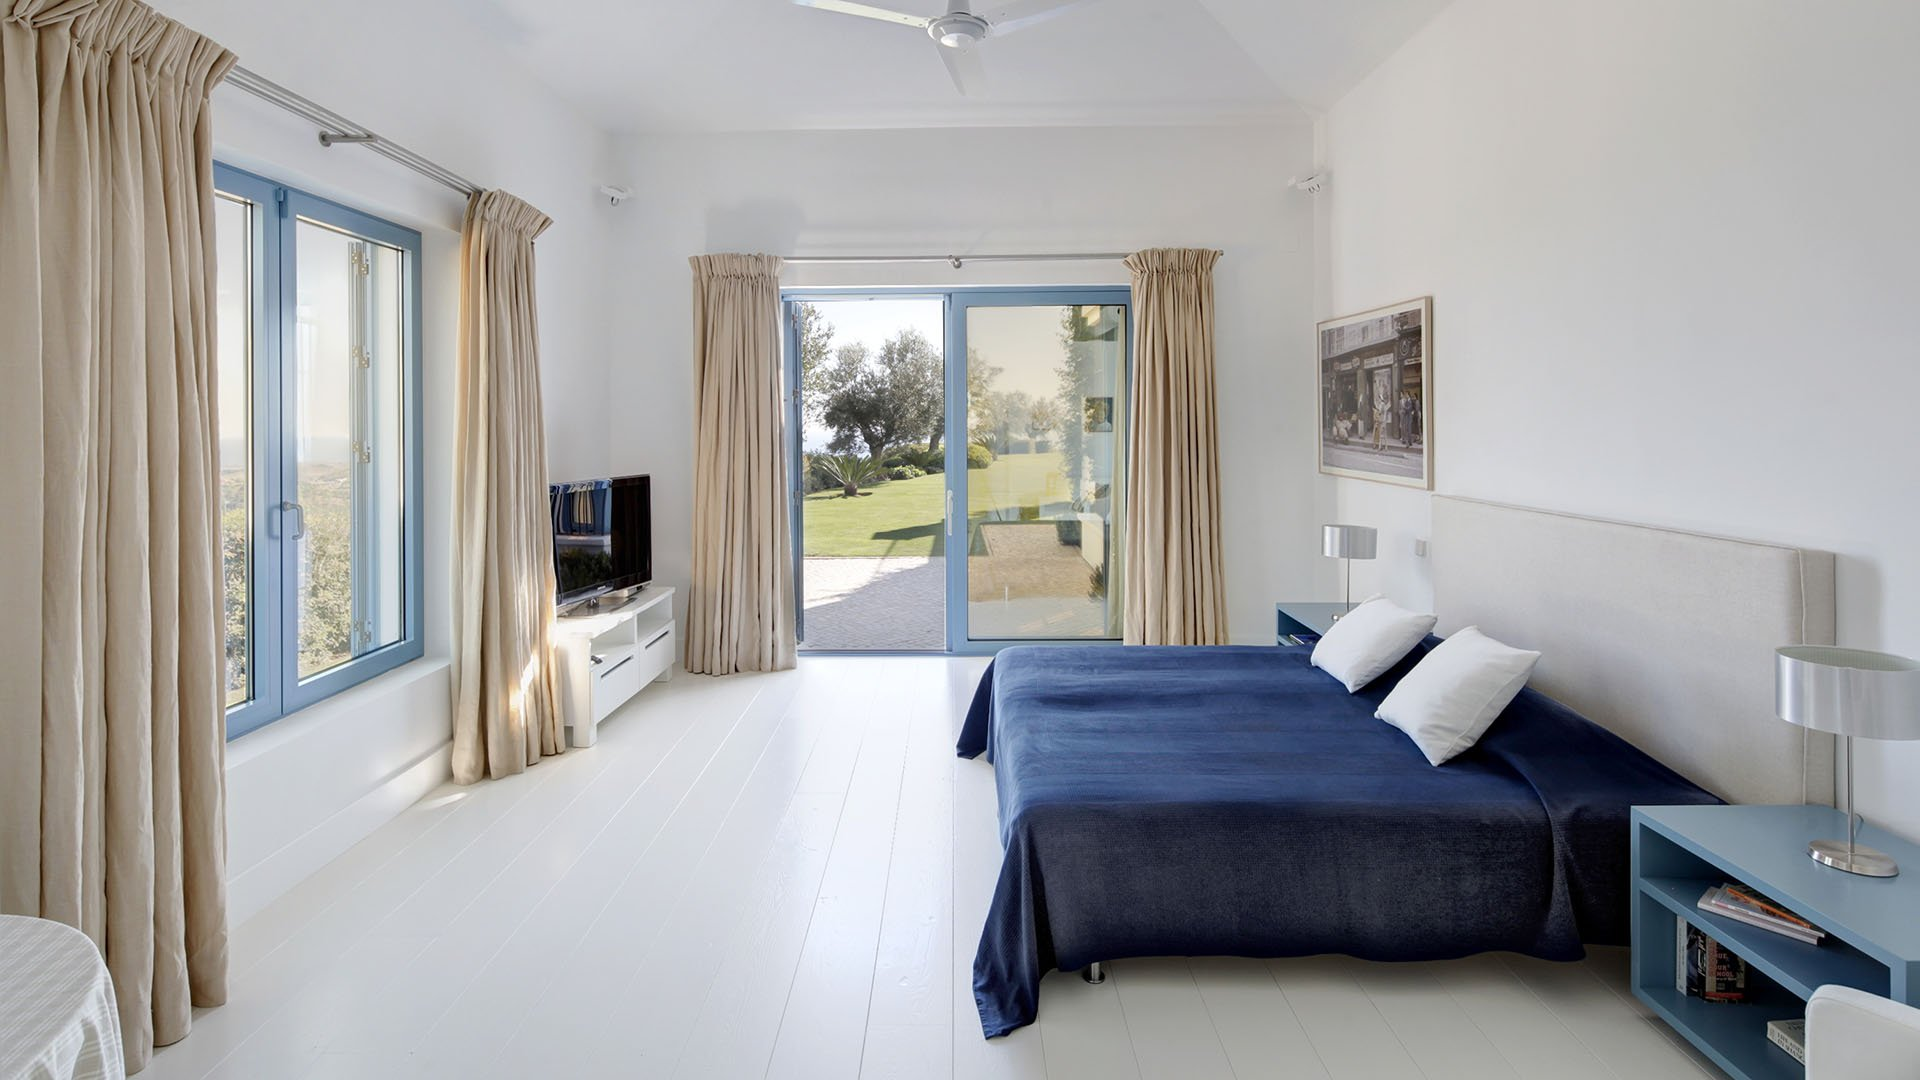 Villa Rabieh: Quietly located luxury villa with views of the Mediterranean Sea and the mountains